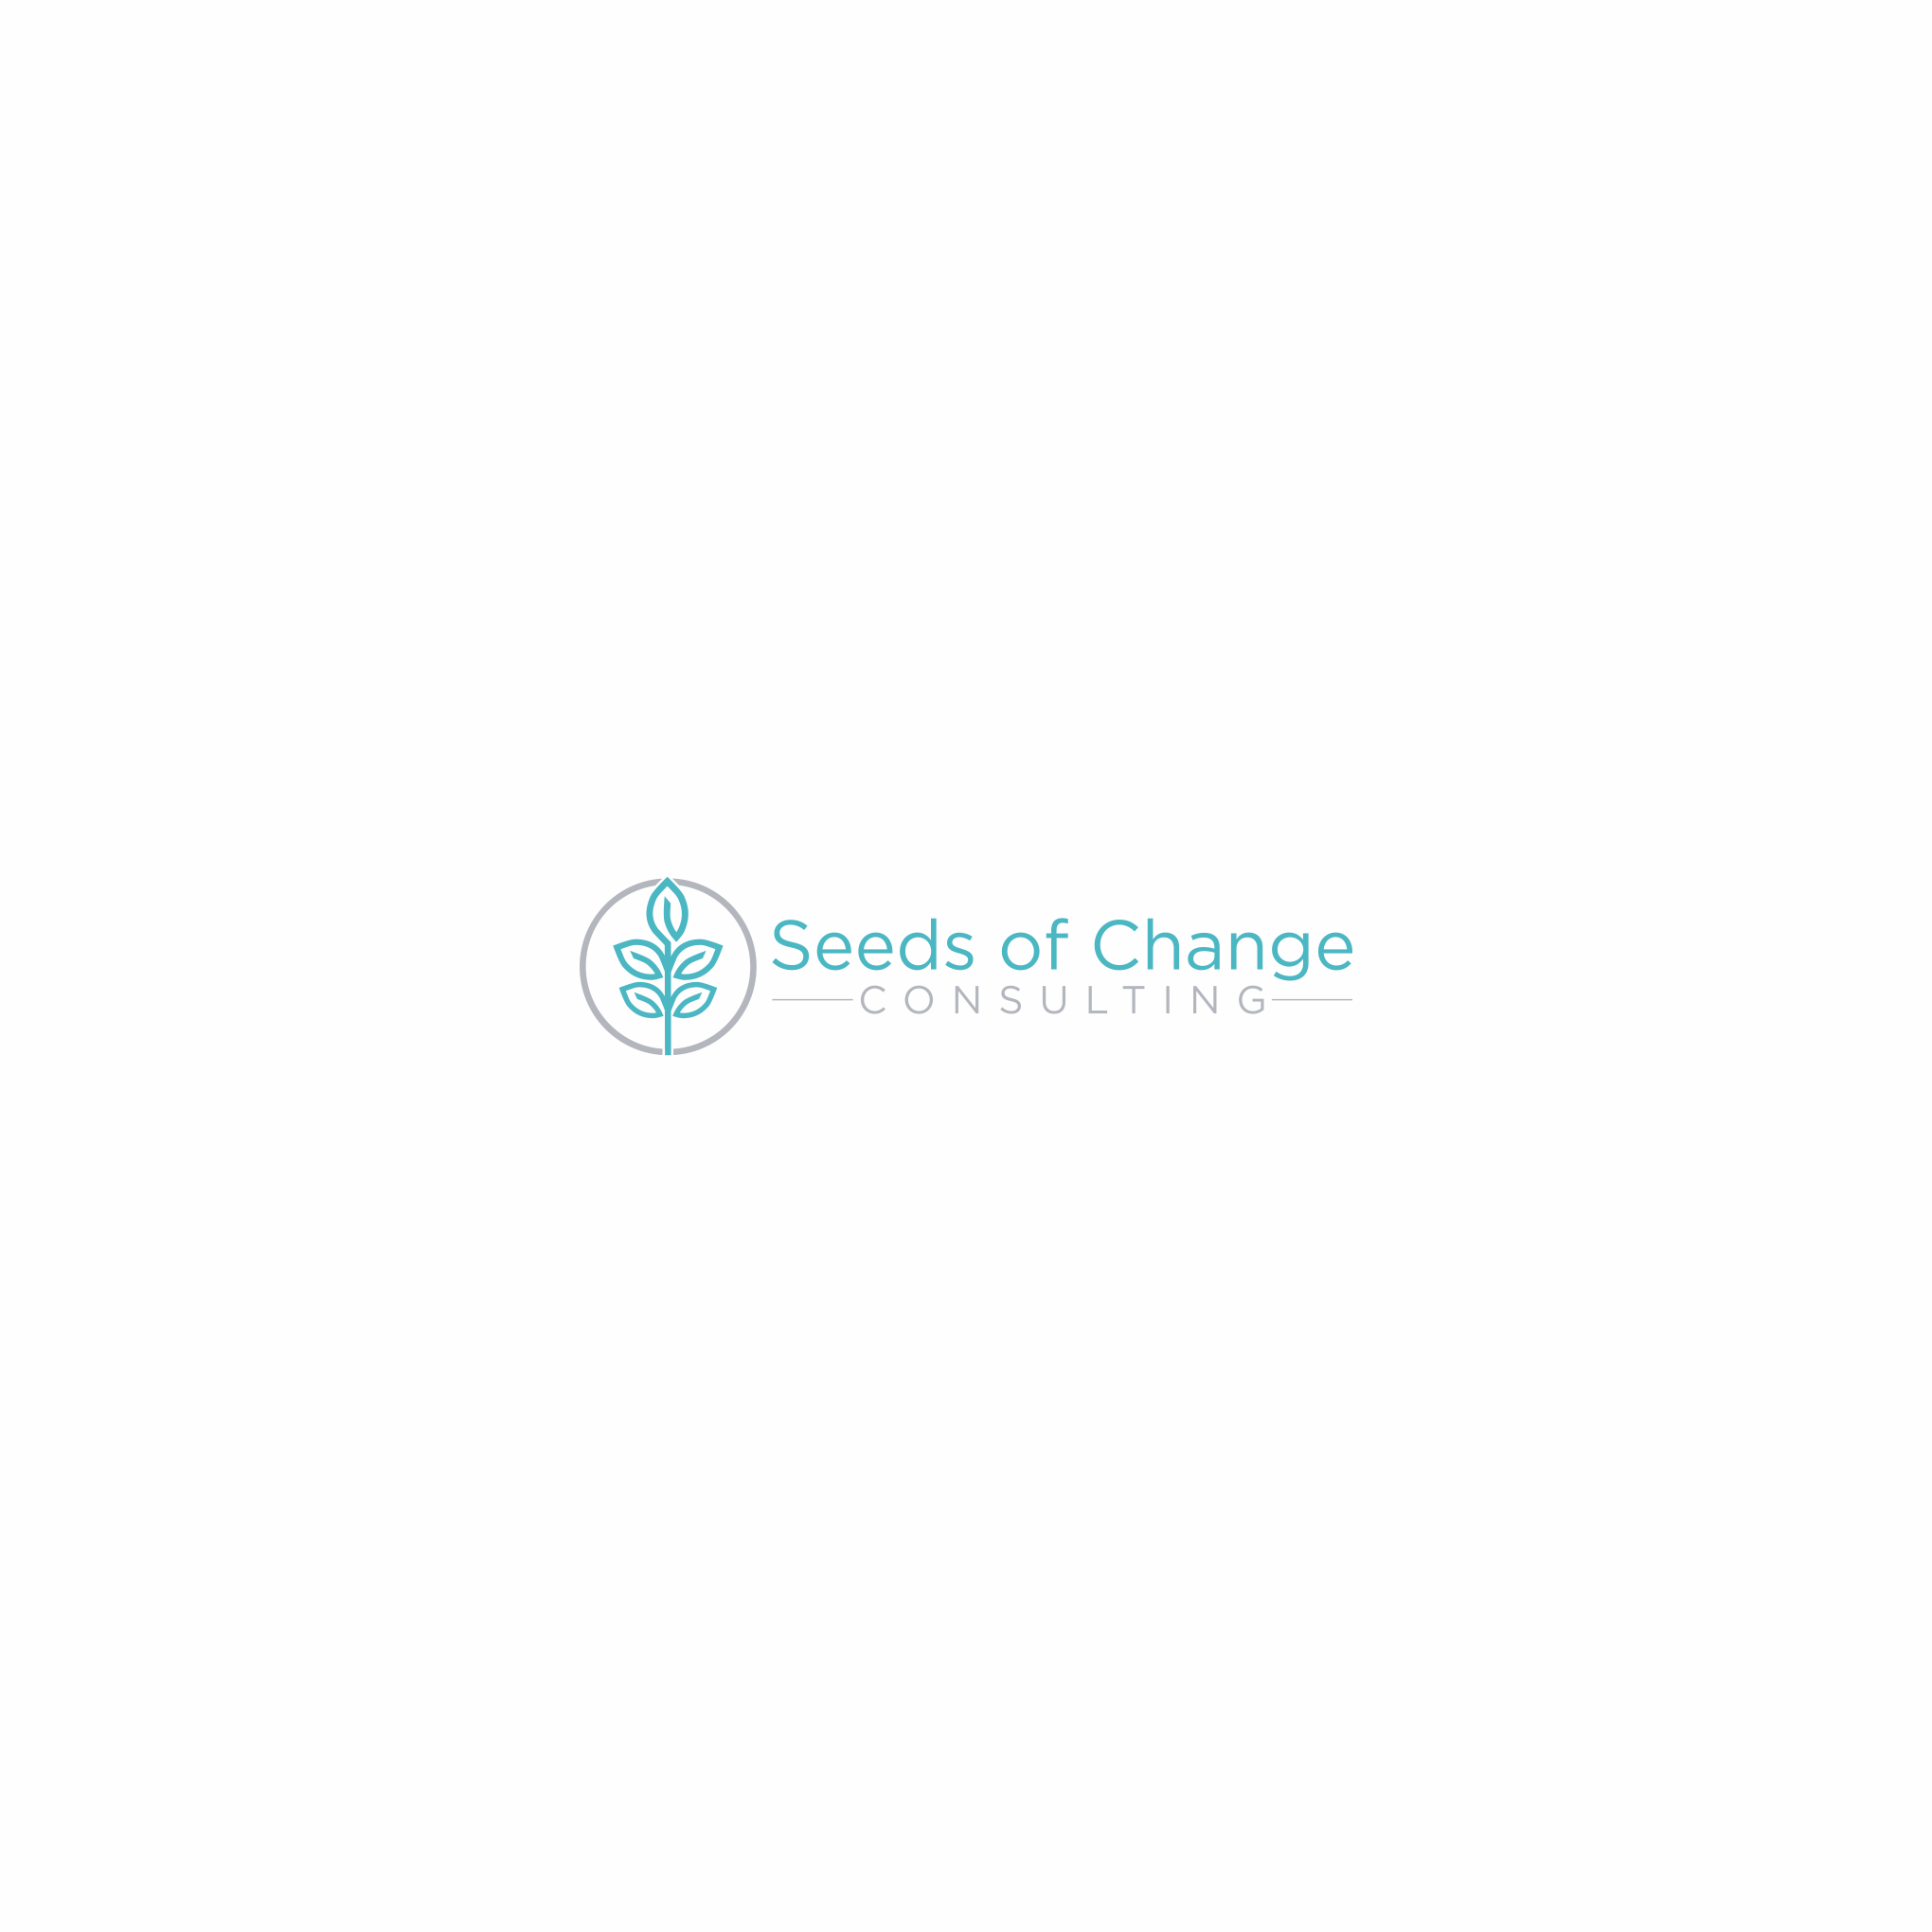 Logo to Attract Businesses and Non-profits